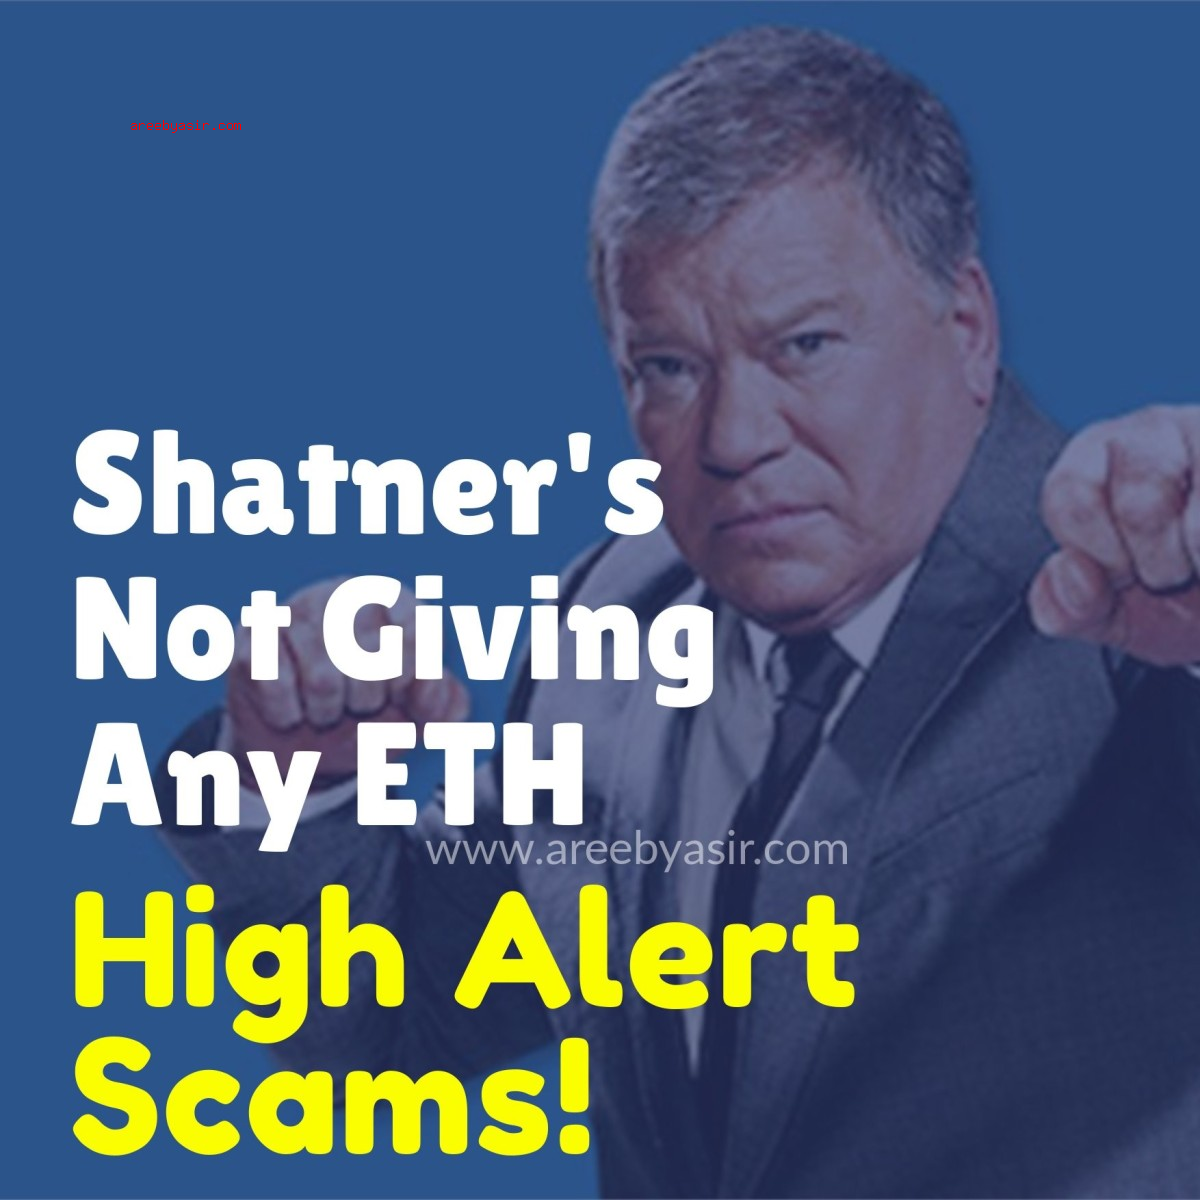 Shatner's Not Giving ETH